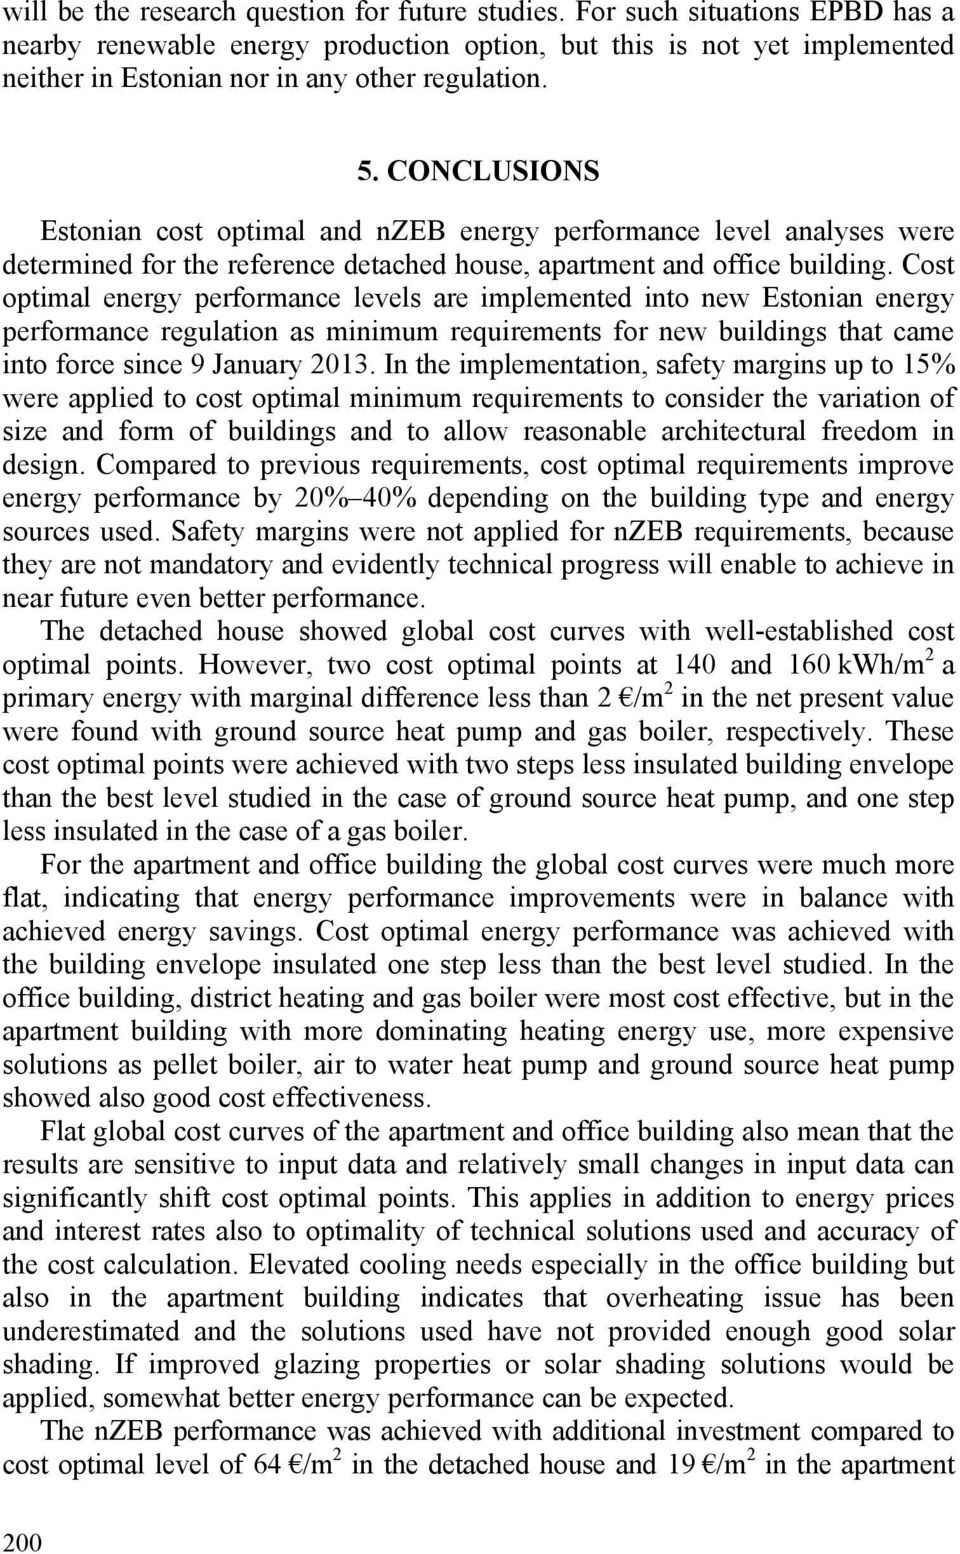 CONCLUSIONS Estonian cost optimal and nzeb energy performance level analyses were determined for the reference detached house, apartment and office building.